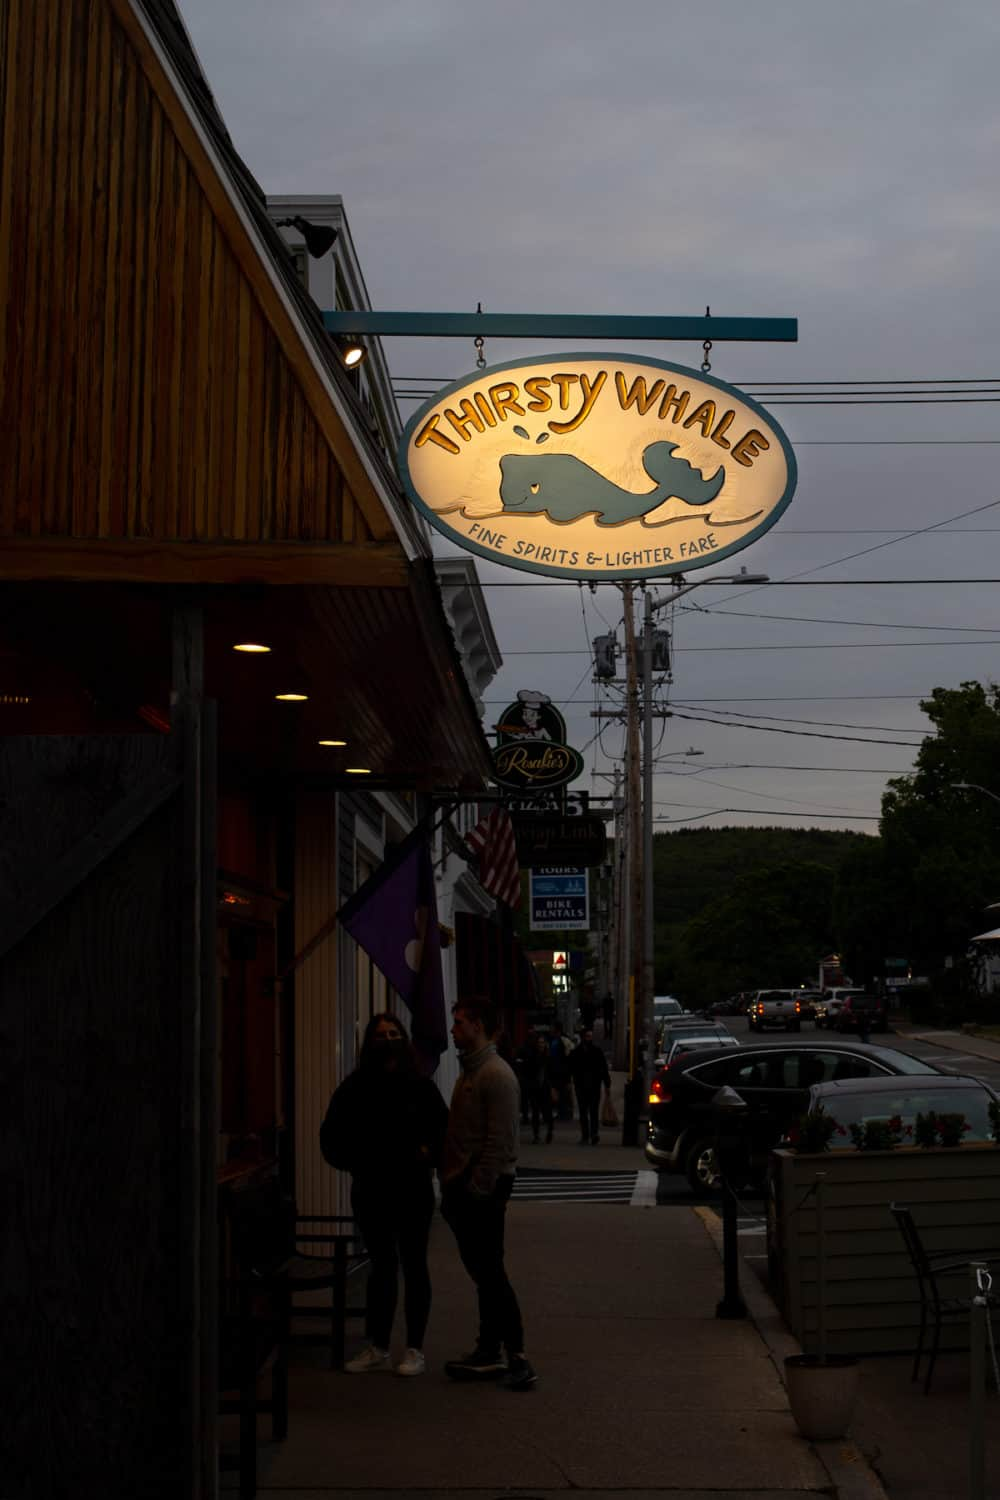 Thirsty Whale tavern in Bar Harbor, Maine